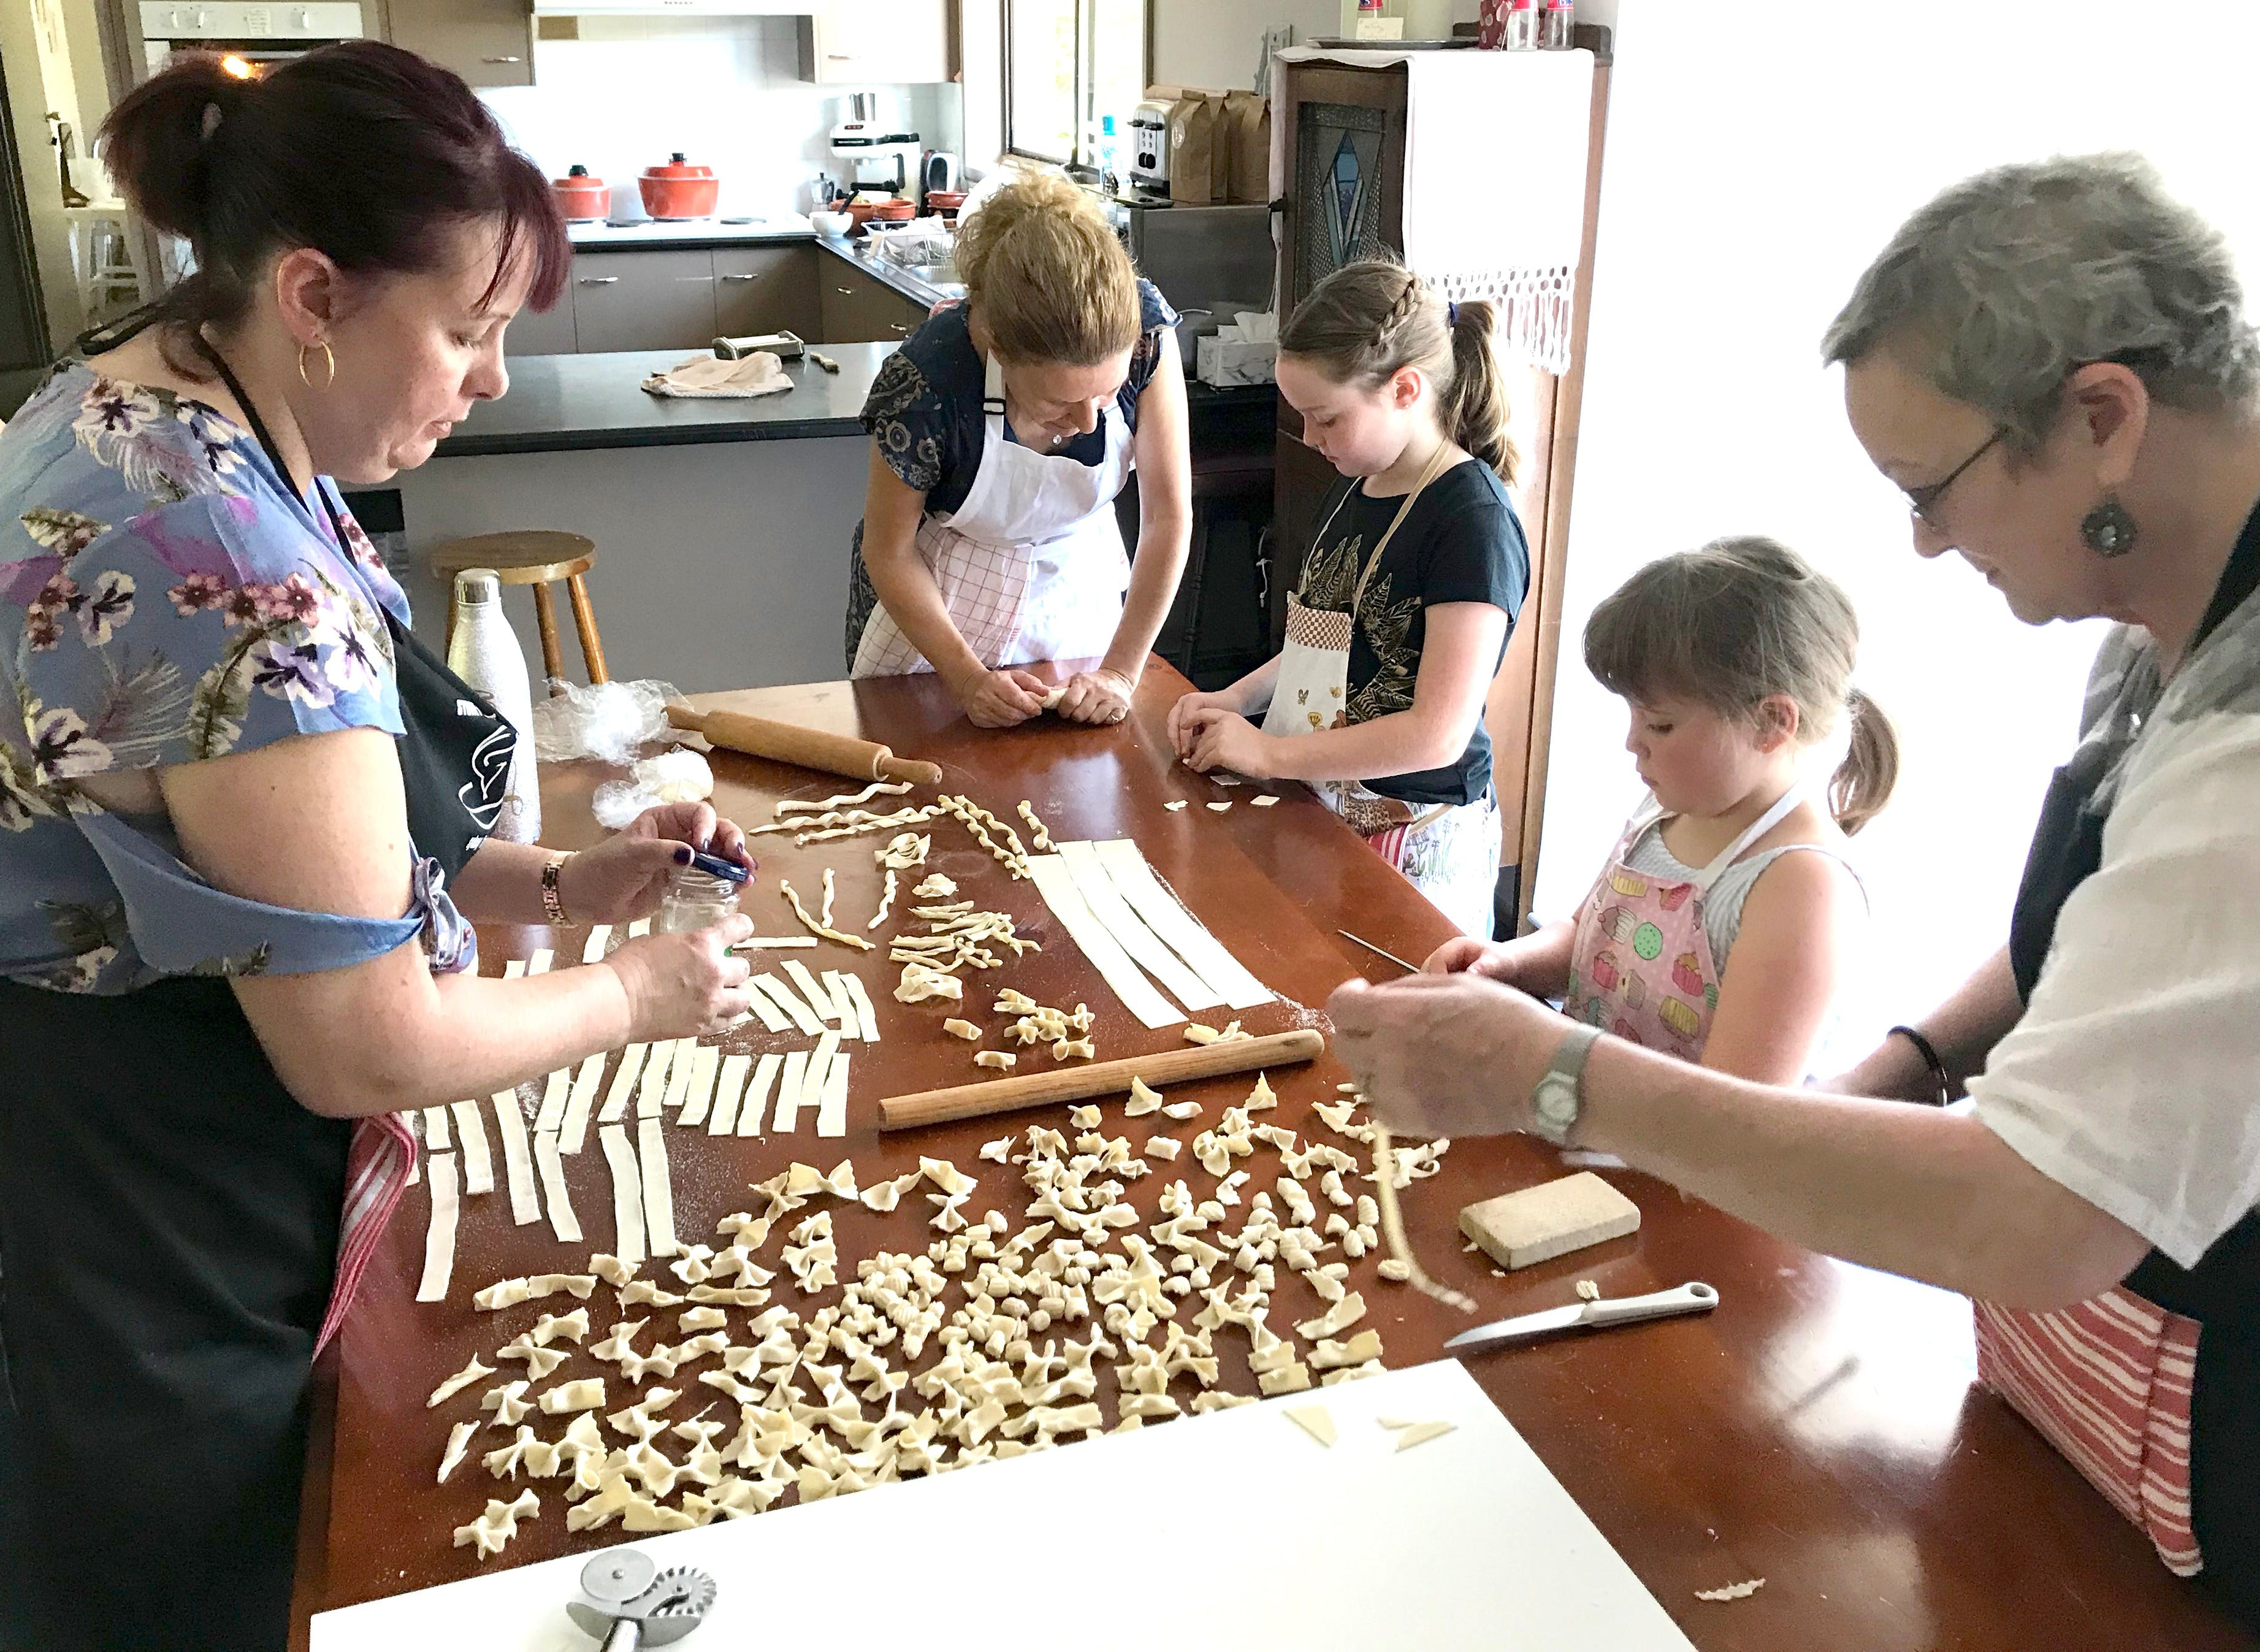 Kids Pasta Making Class - hands on fun at your house - Accommodation Kalgoorlie